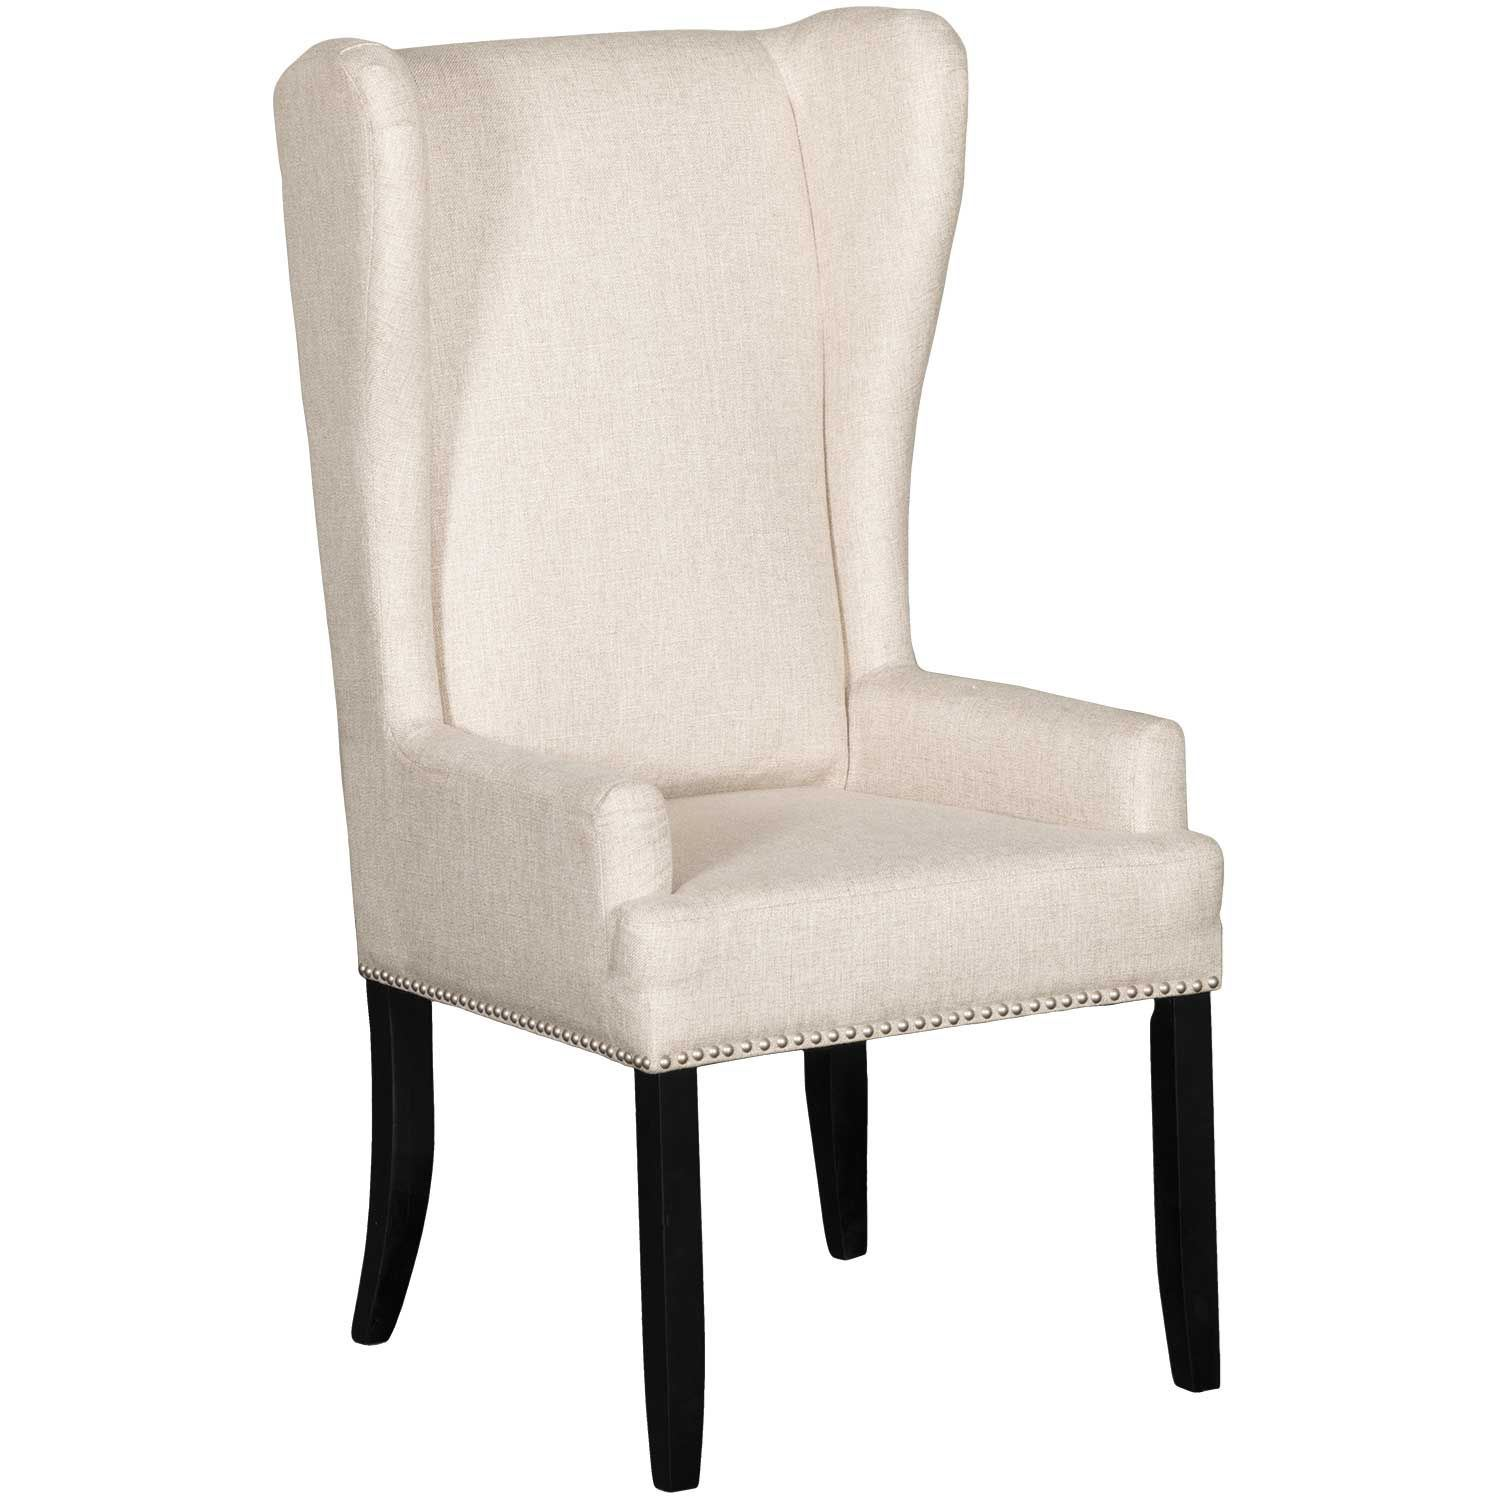 Wing Back Chairs Magnolia Wing Back Chair